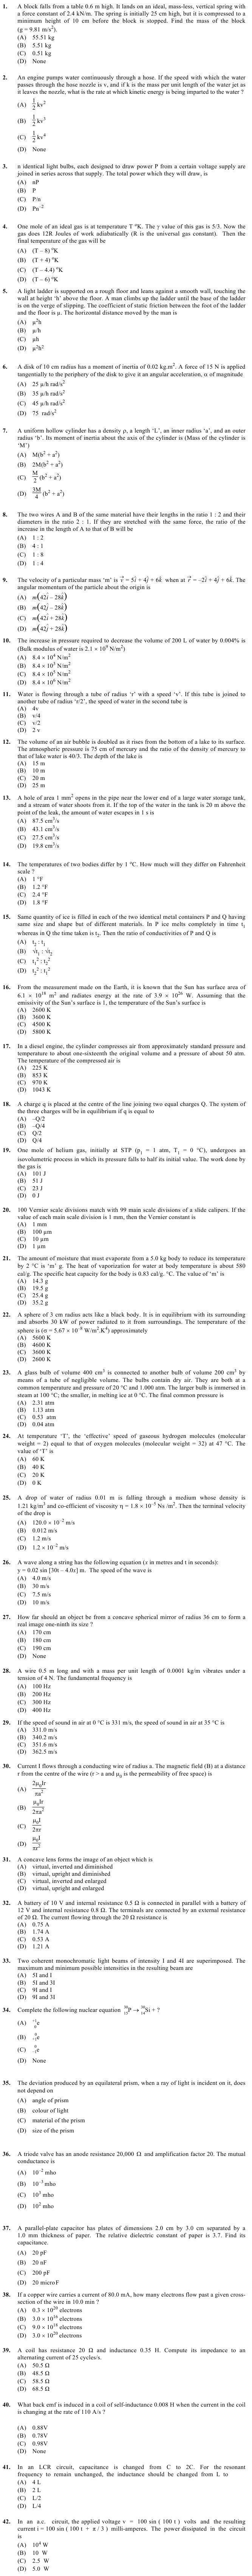 OJEE 2013 Question Paper for PHY/CHEM